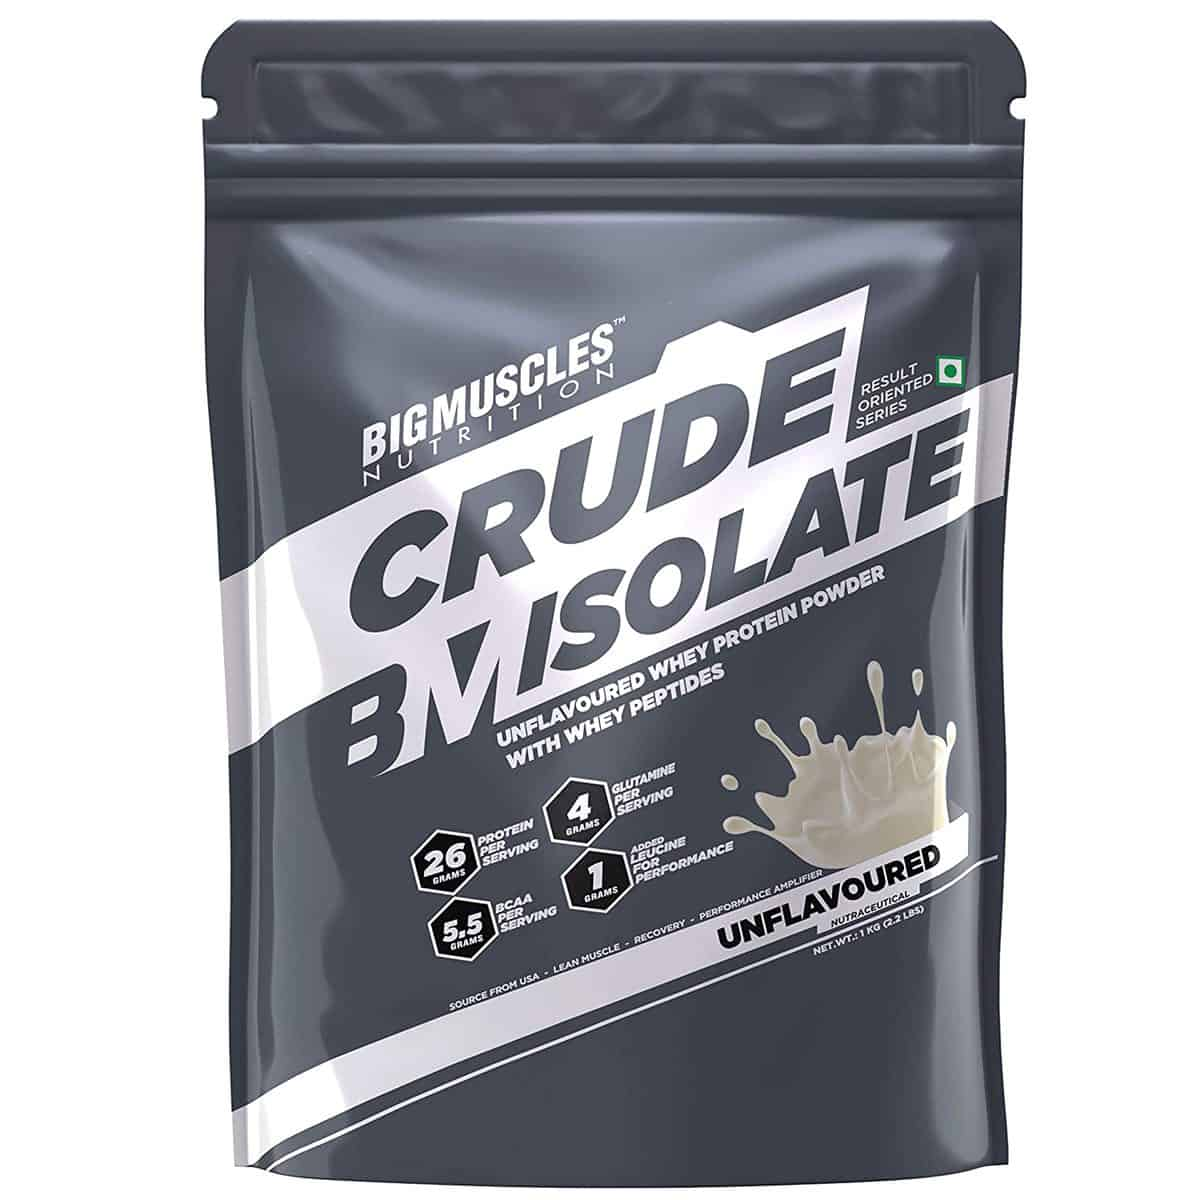 Bigmuscles Nutrition Crude Isolate